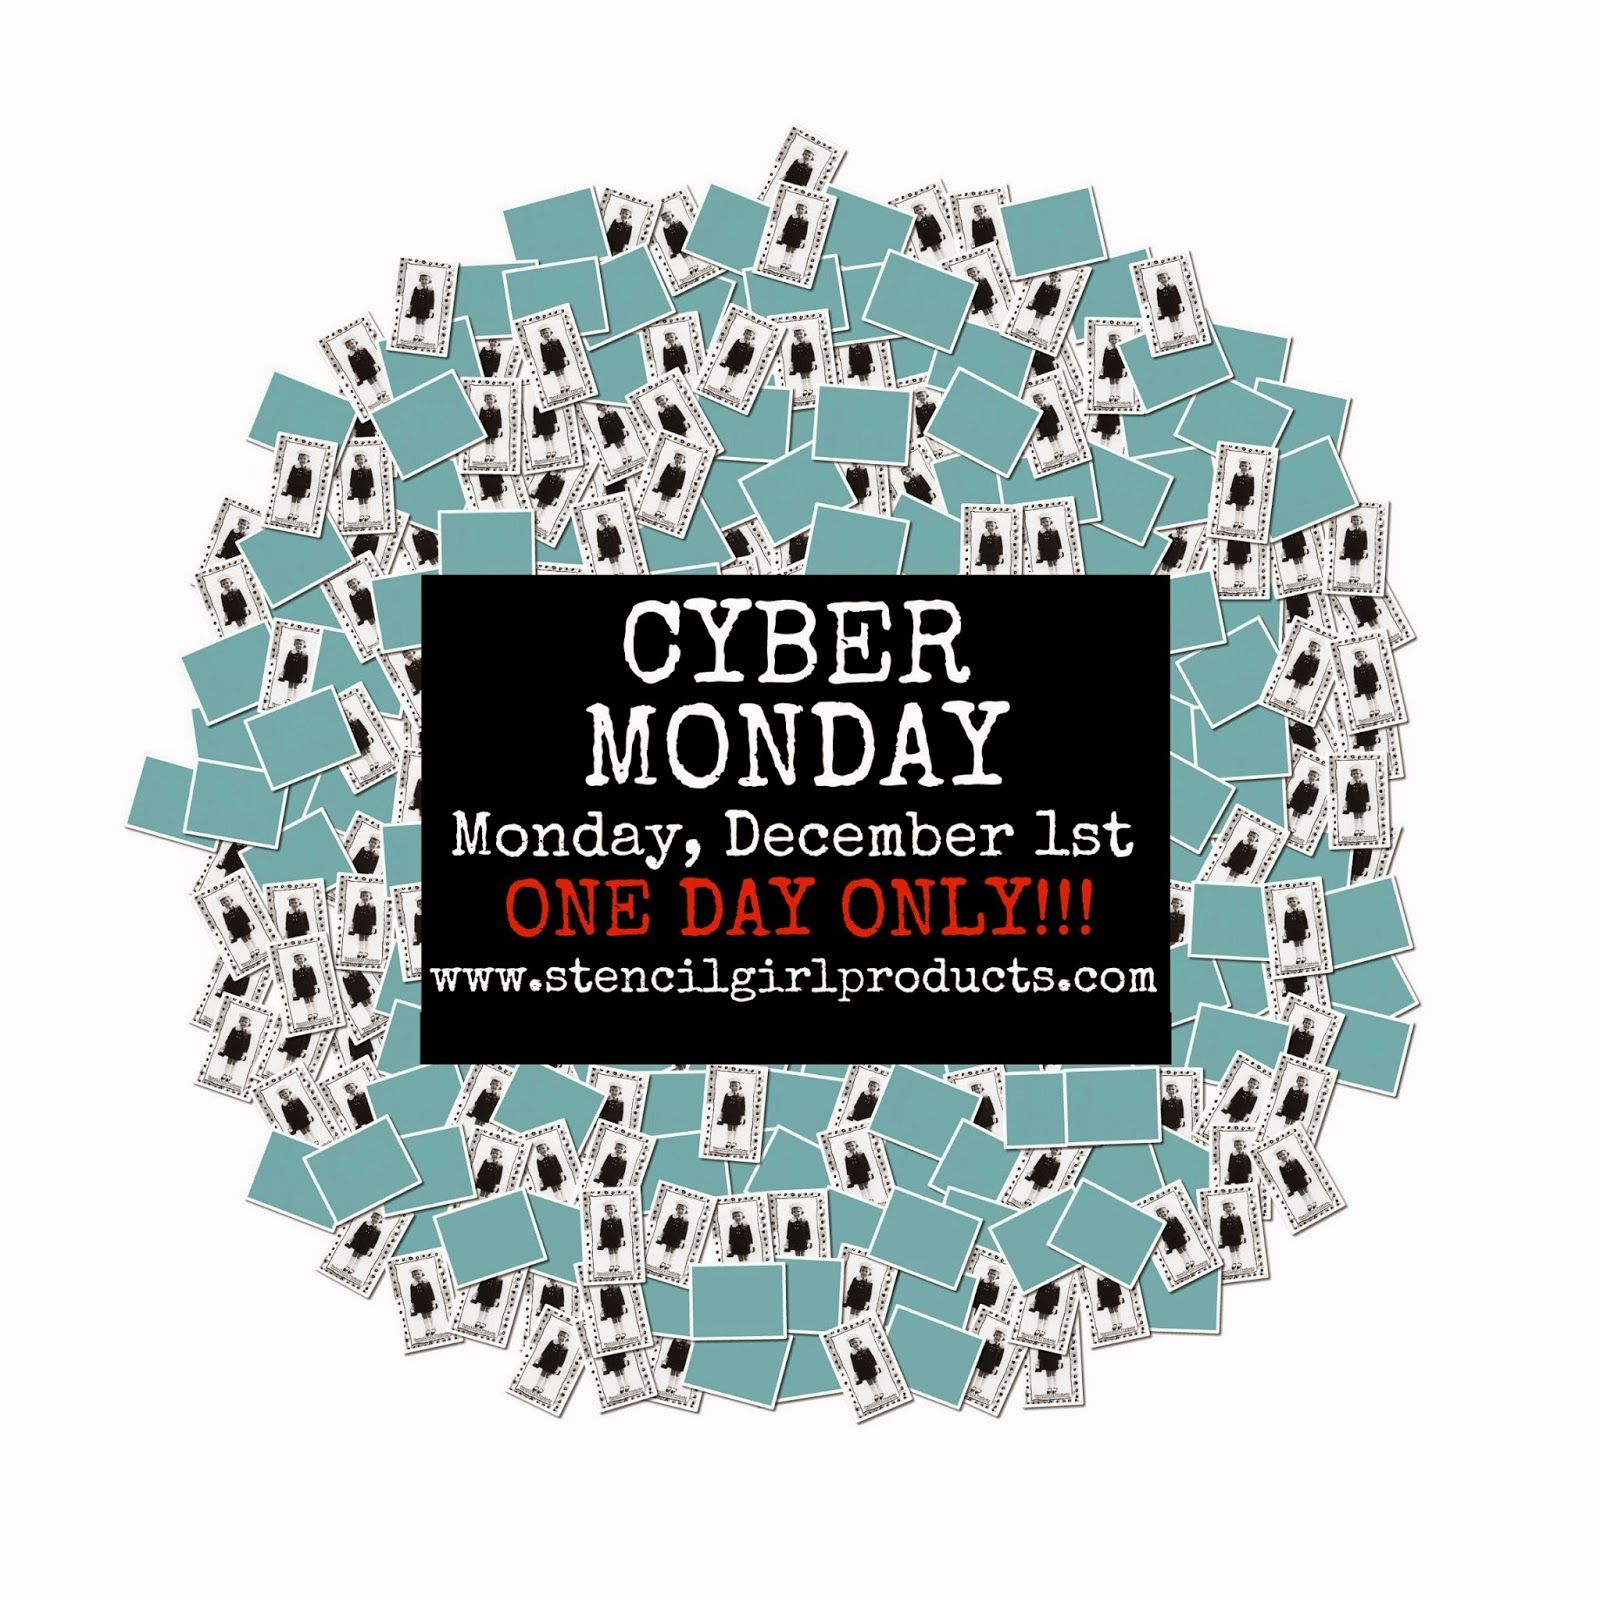 StencilGirl Prodcuts CYBER Monday sale. ONE day only! Monday, December 1, 2014.